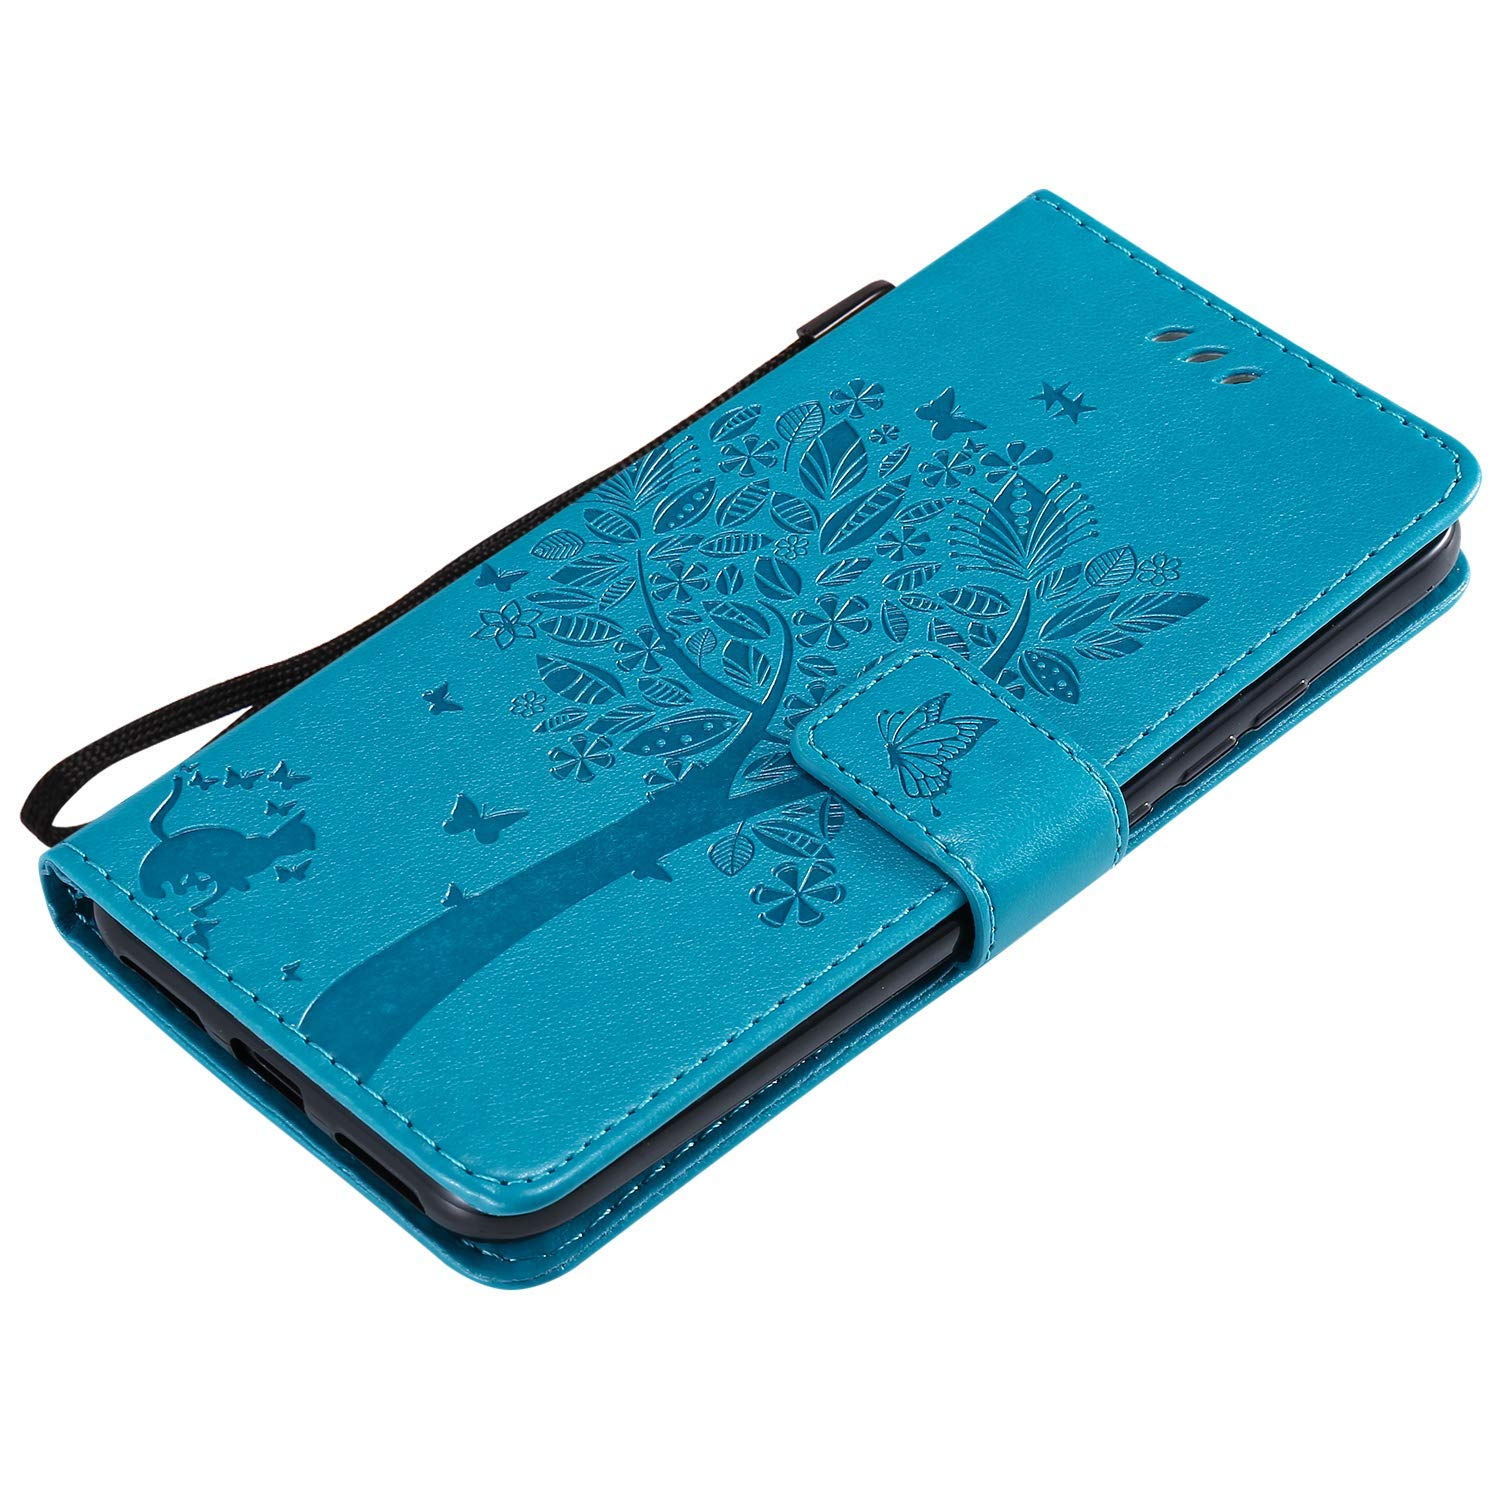 IKASEFU Compatible with MOTO G7 Play Case Emboss Pu Leather Wallet Strap Case Card Slots Shockproof Magnetic Kickstand Feature Slim Fit Folio Flip Book Cover Protective Bumper Case,Blue